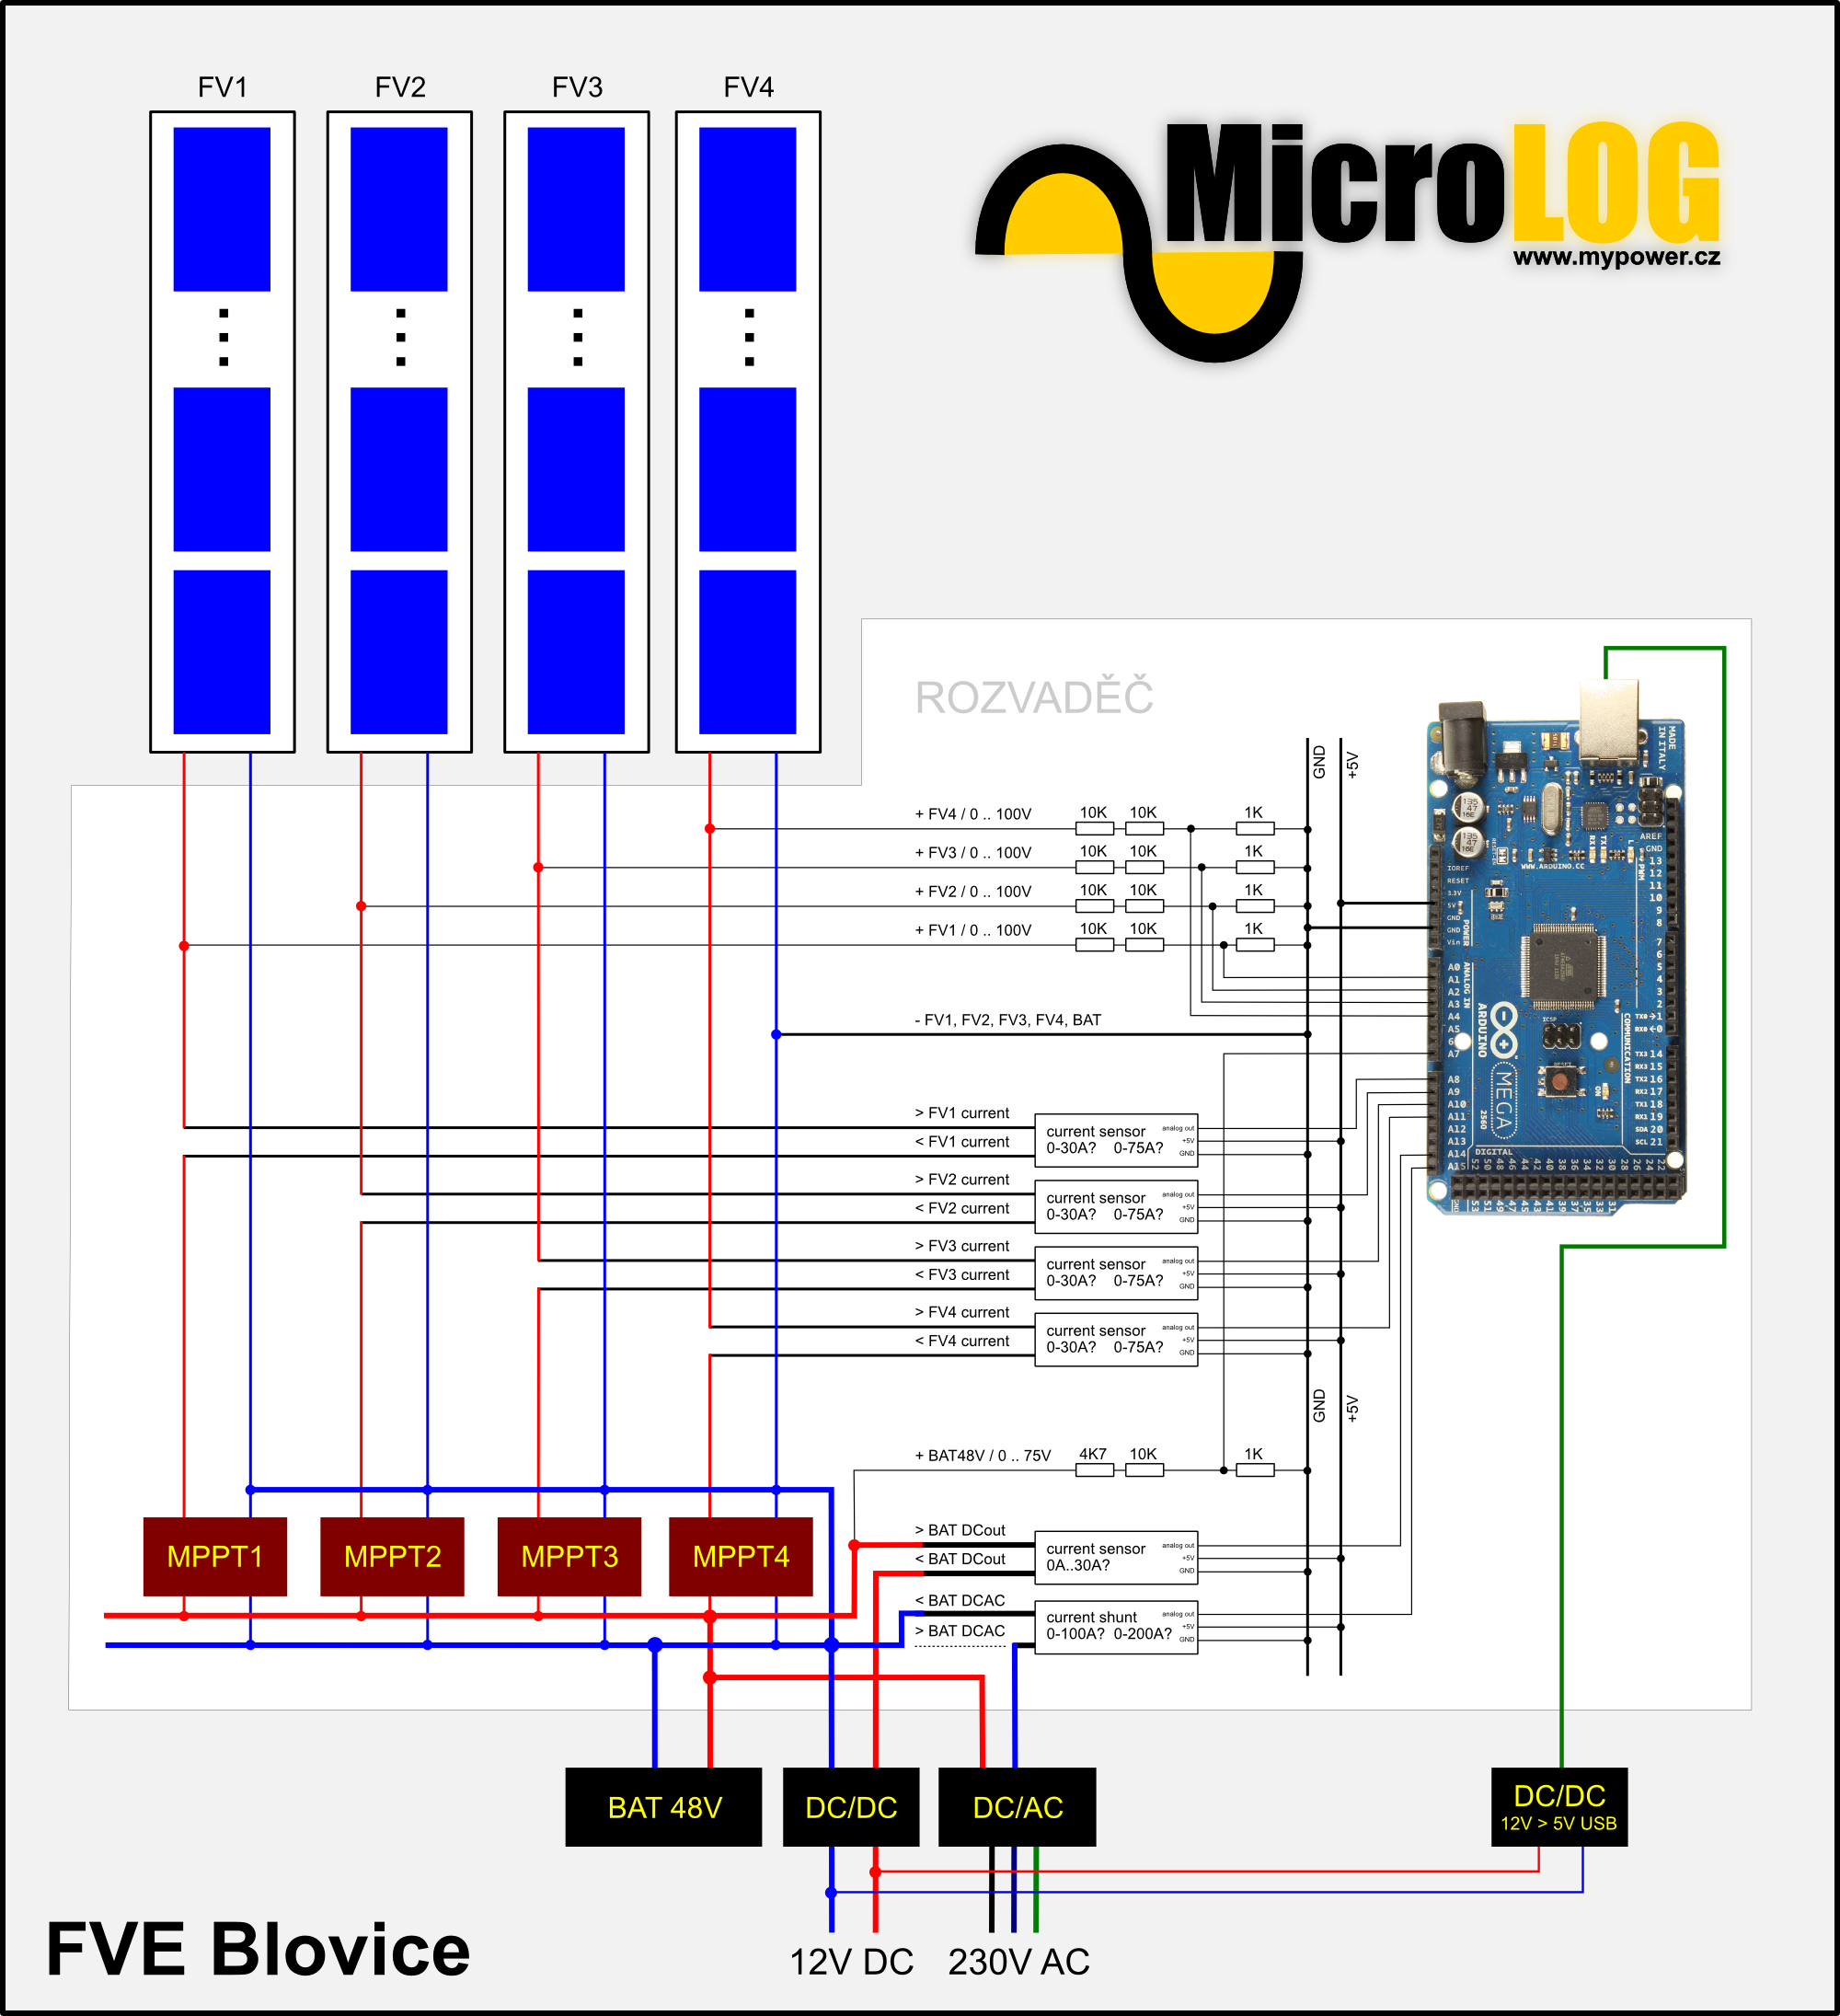 Schema Rozvade Frum Mypowercz Proficad 65 By Software For Electrical Diagrams Schematics Planky Ktere Se Tu Kdy Odeme Na Foru Vyskytly Pouzivam Http Inkscapeorg Je To Ale Spise Graficky Program Nez Cad I V Inkscape Da Resit